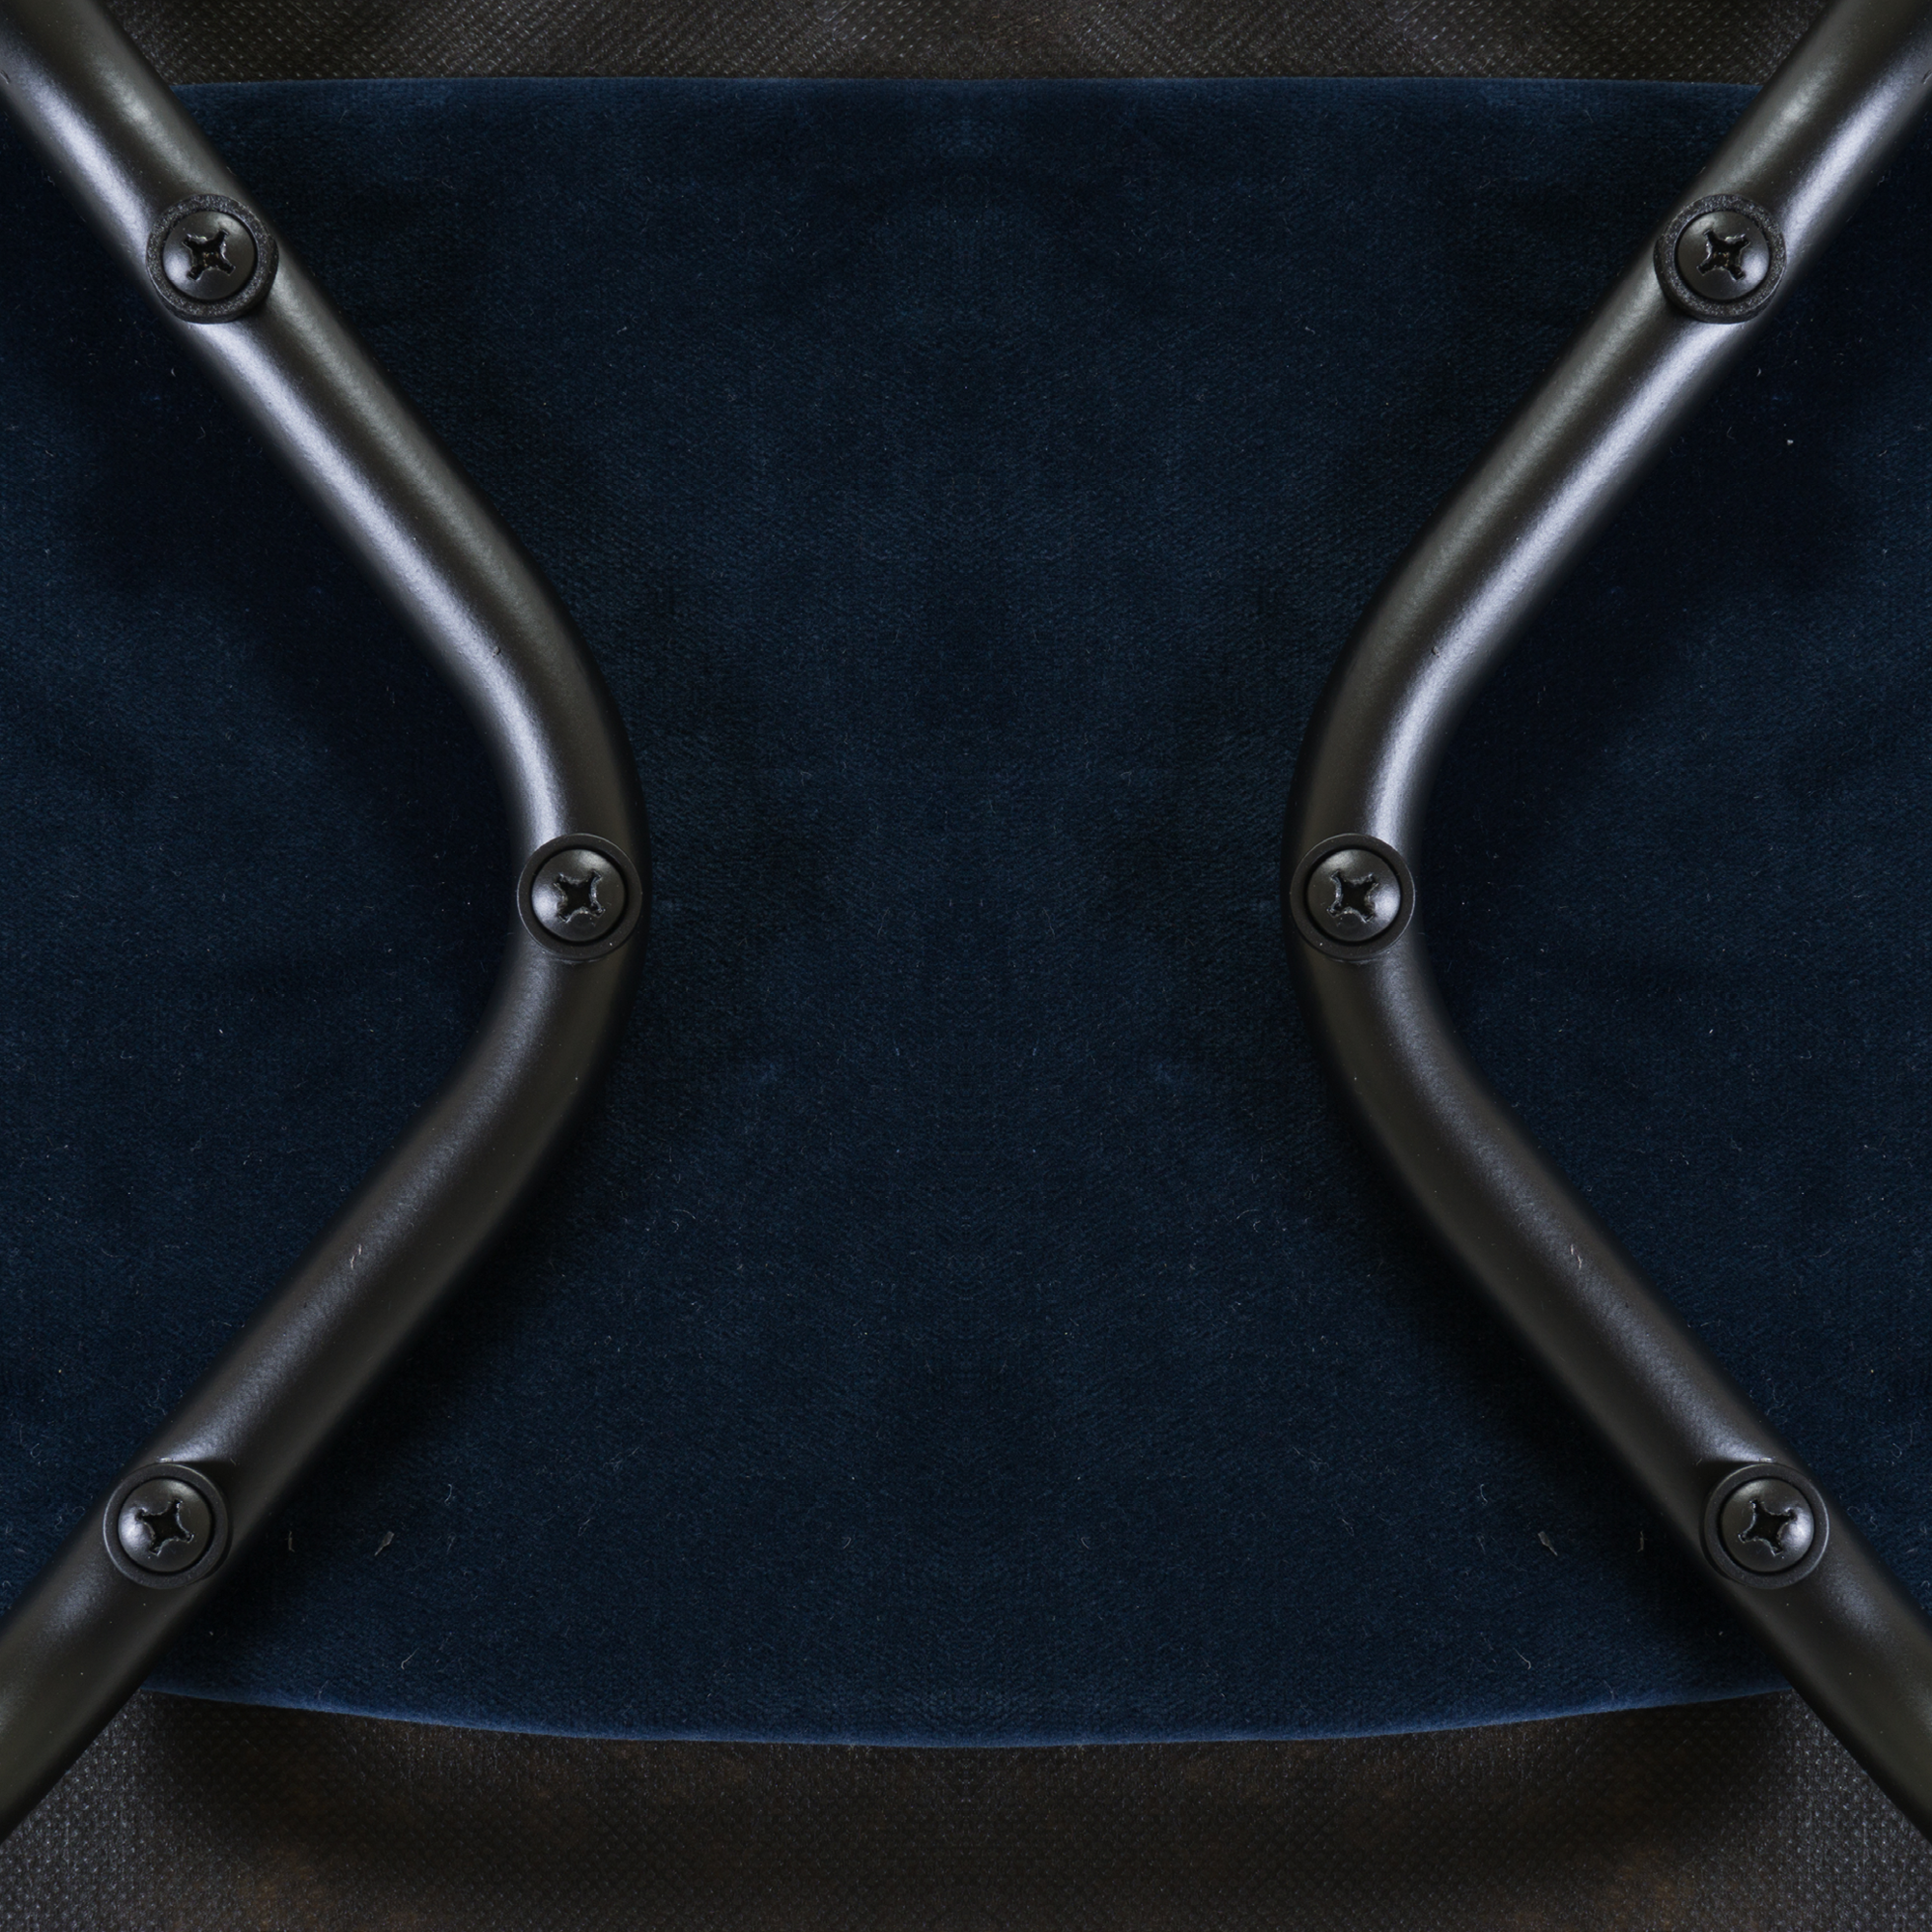 Saarinen Executive Armless Chairs in Navy Velvet, Black Edition12.png